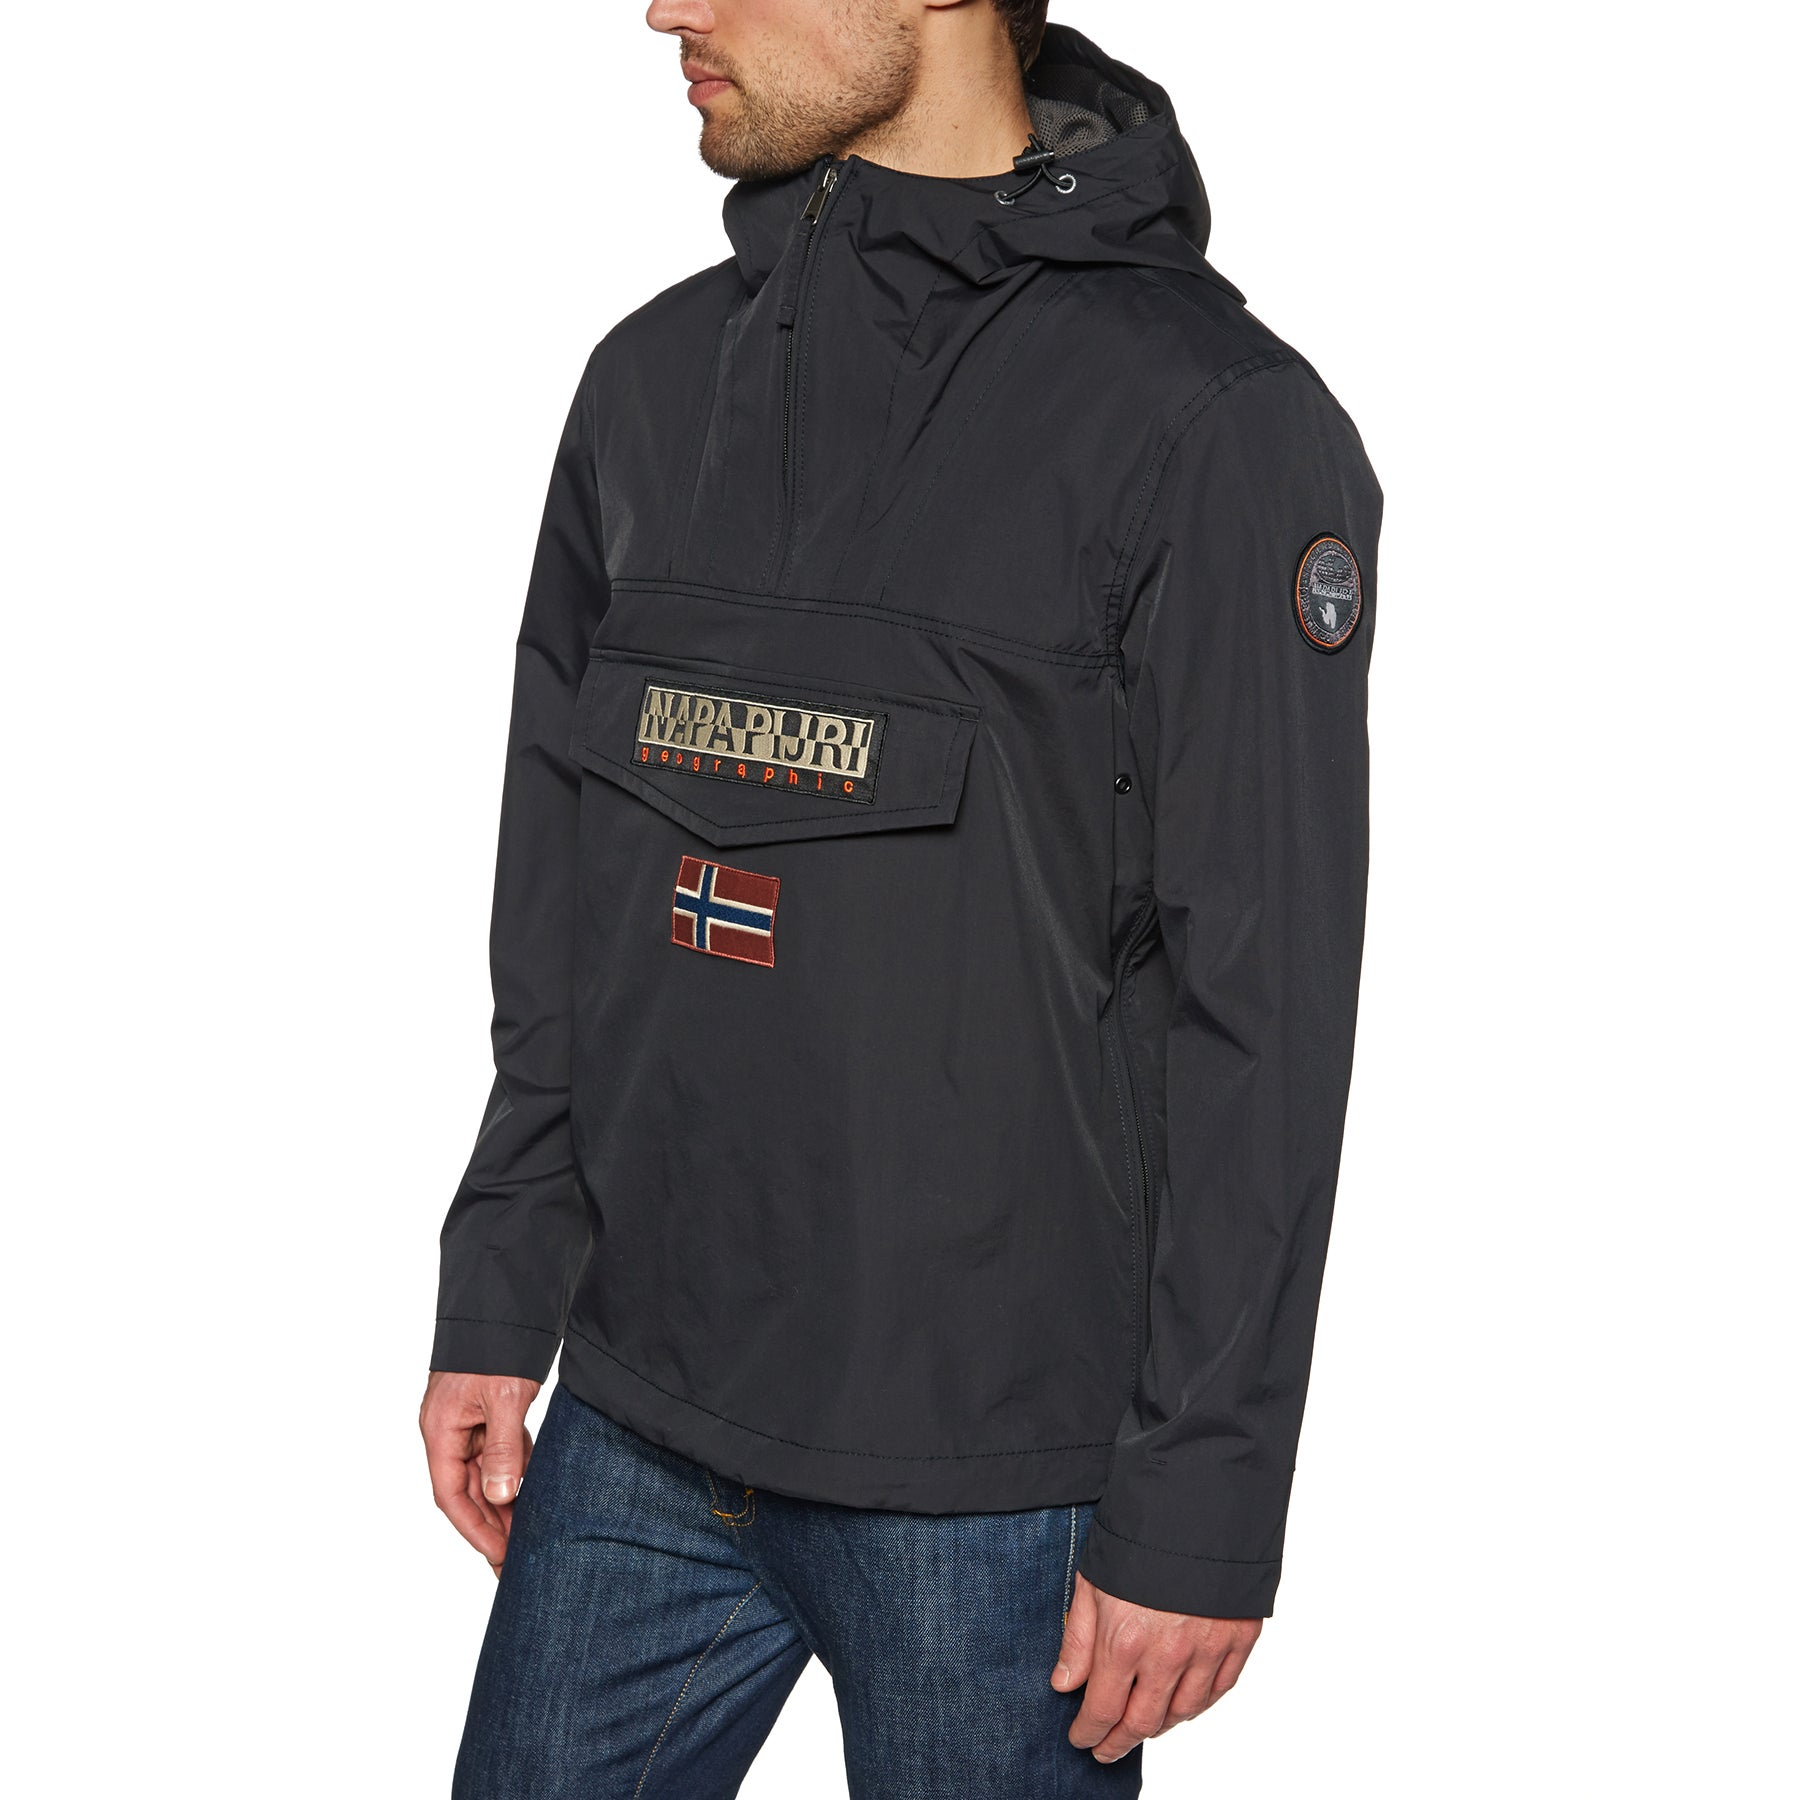 a287f1152281f Napapijri Rainforest Summer Jacket available from Surfdome